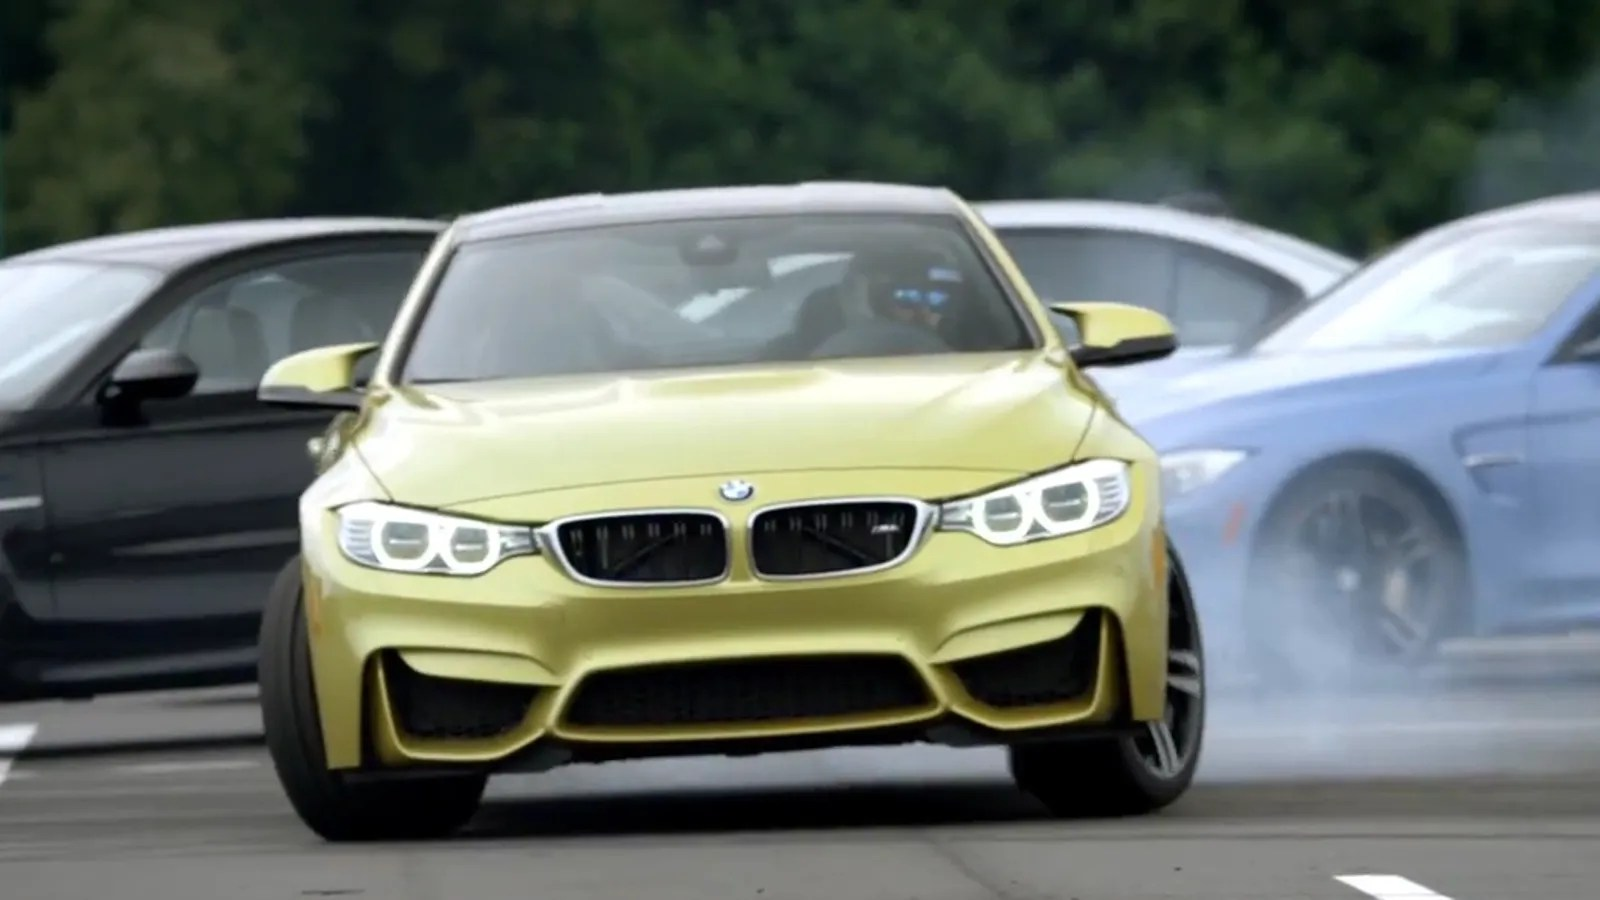 Precision Drifting A Bmw M4 Around Owners' Mcars